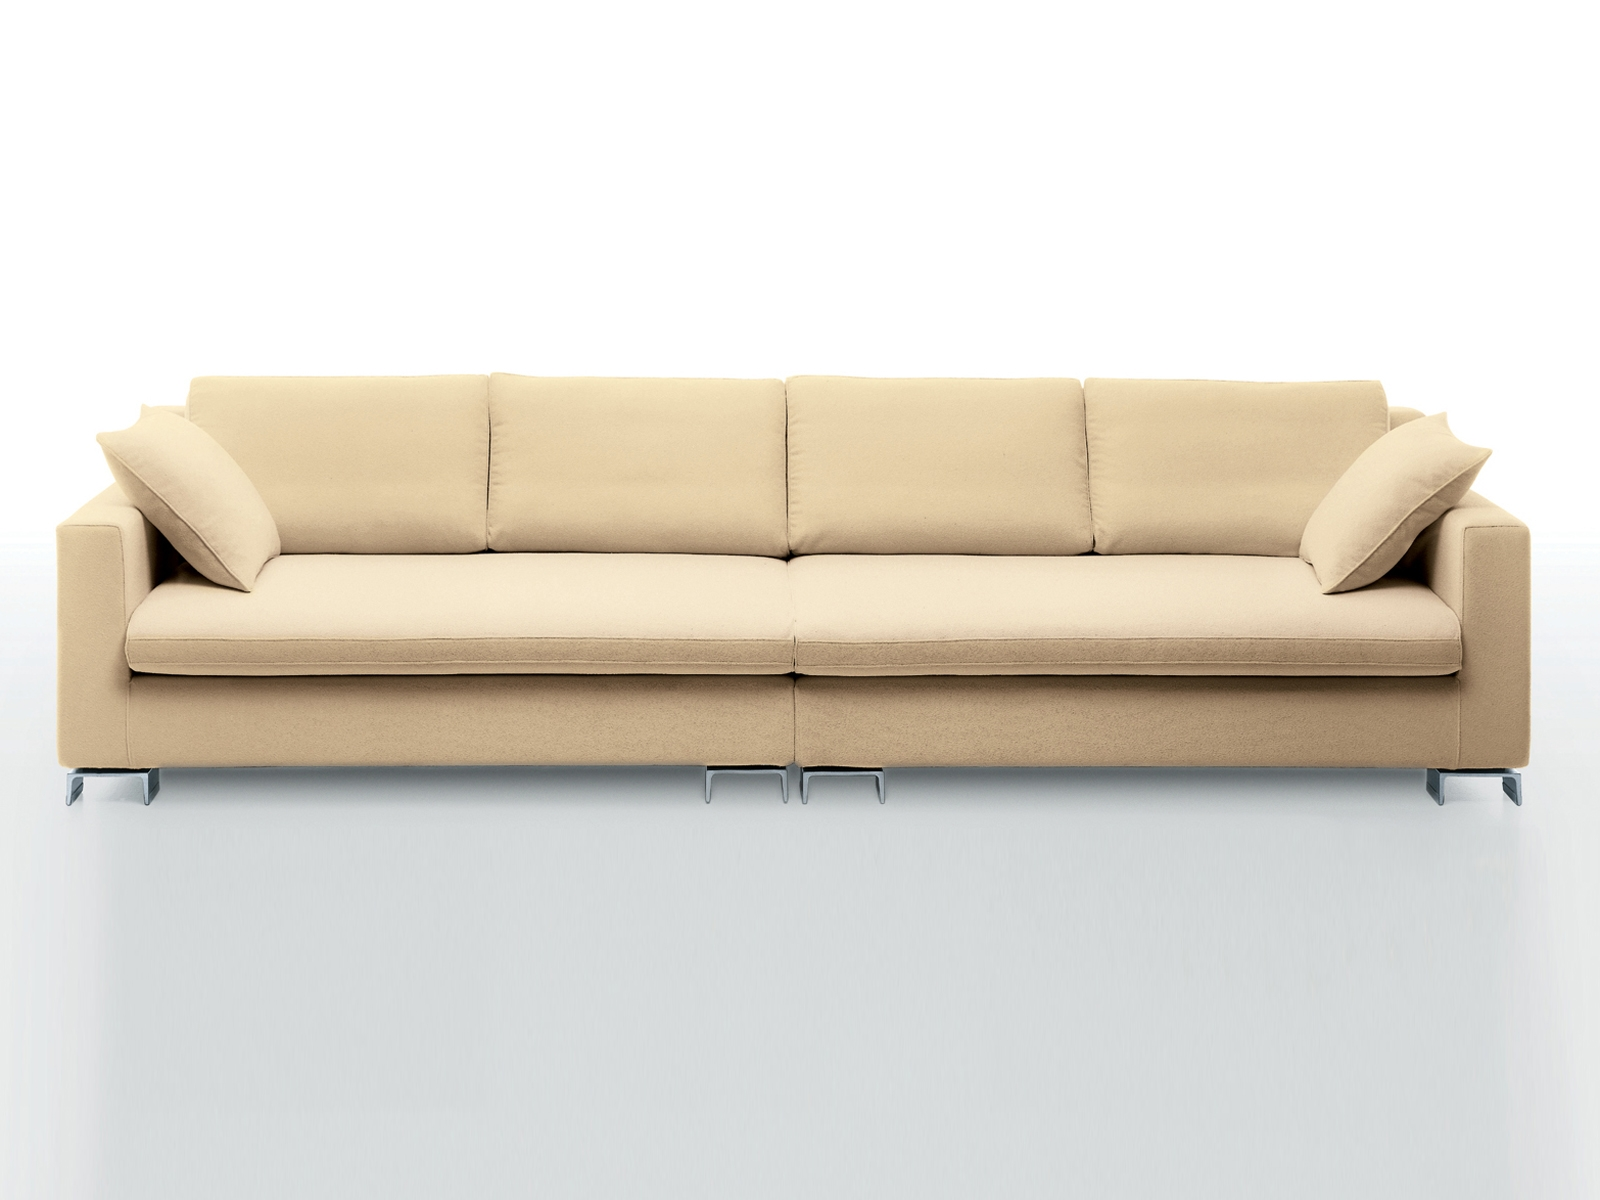 Design 4 Seater Sofas Archiproducts With Regard To 4 Seater Sofas (Image 7 of 15)